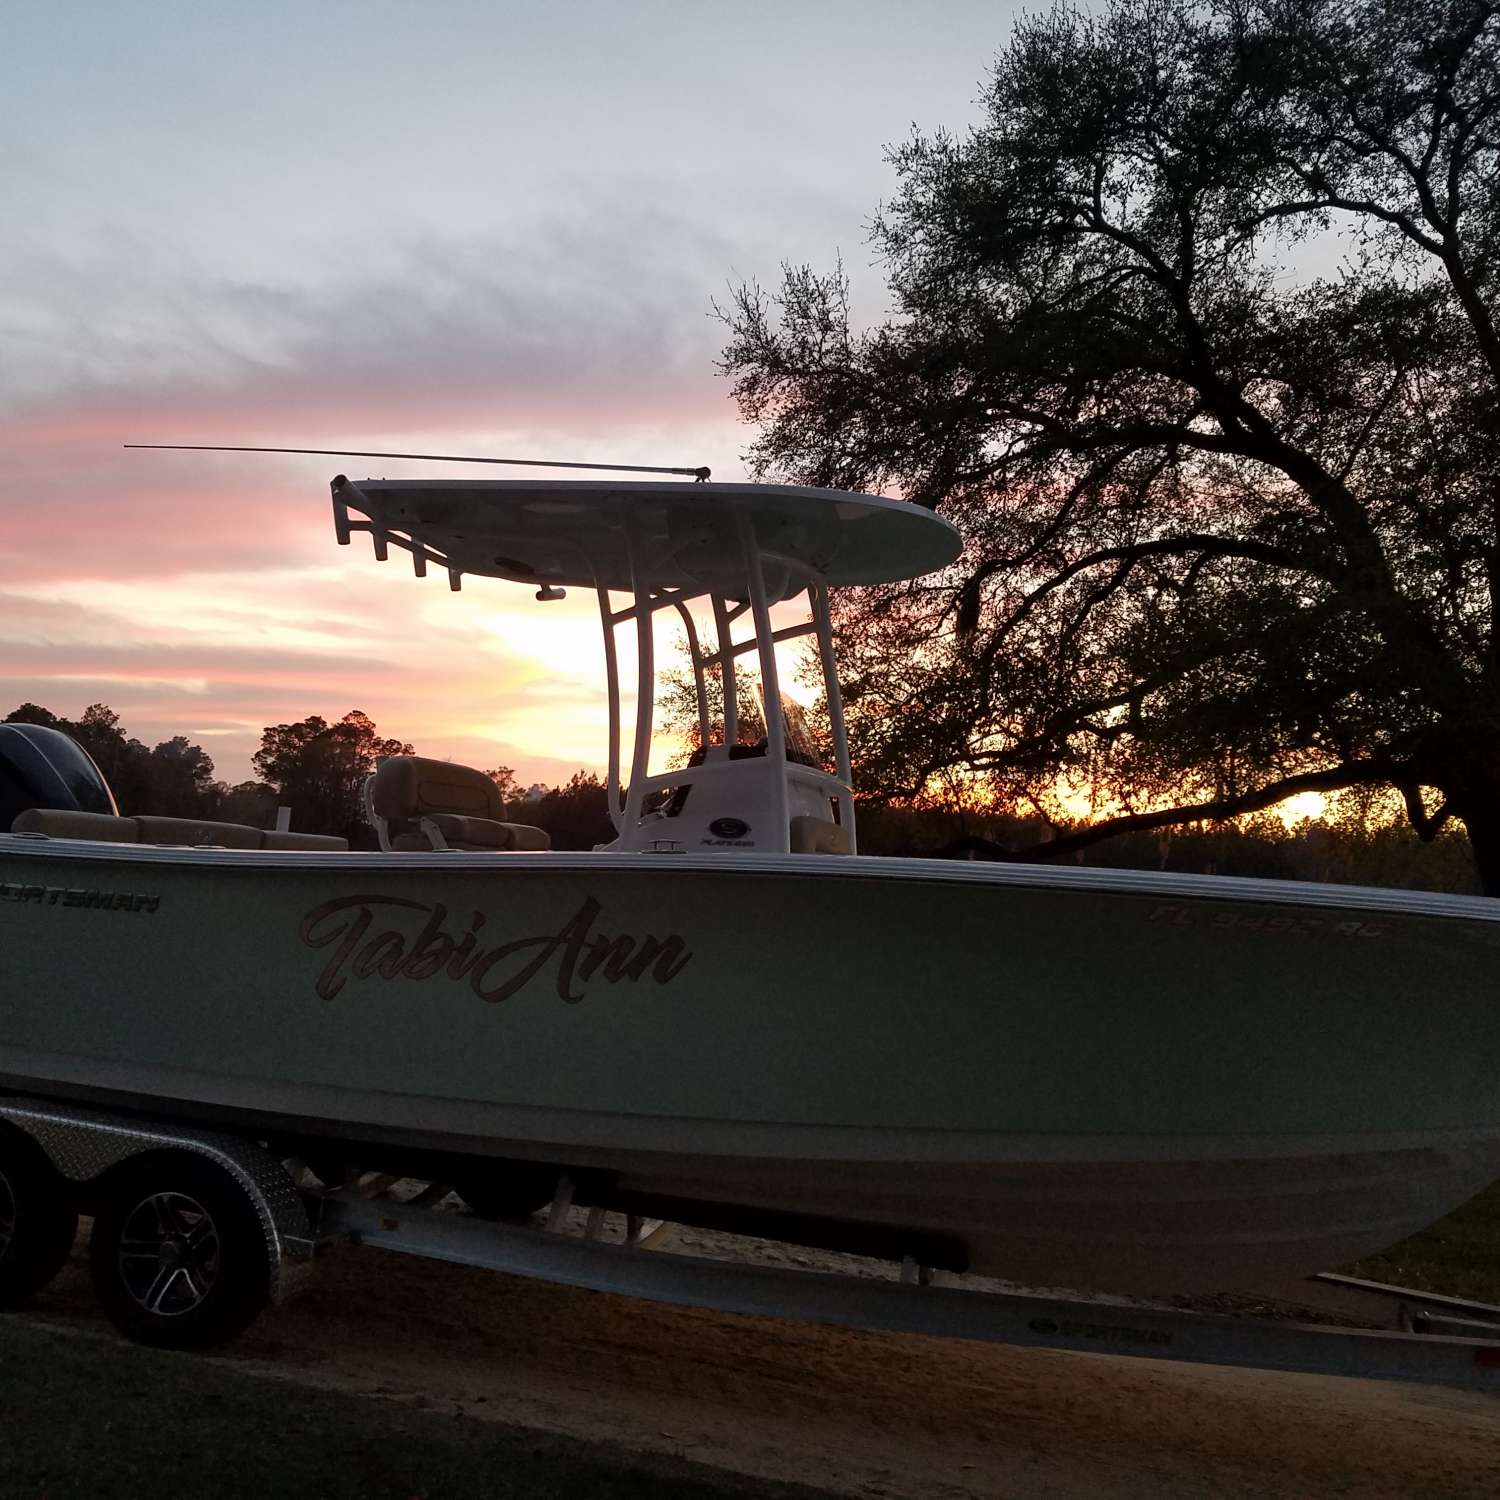 Title: The Tabi Ann - On board their Sportsman Heritage 231 Center Console - Location: Chipley, Florida. Participating in the Photo Contest #SportsmanMarch2017